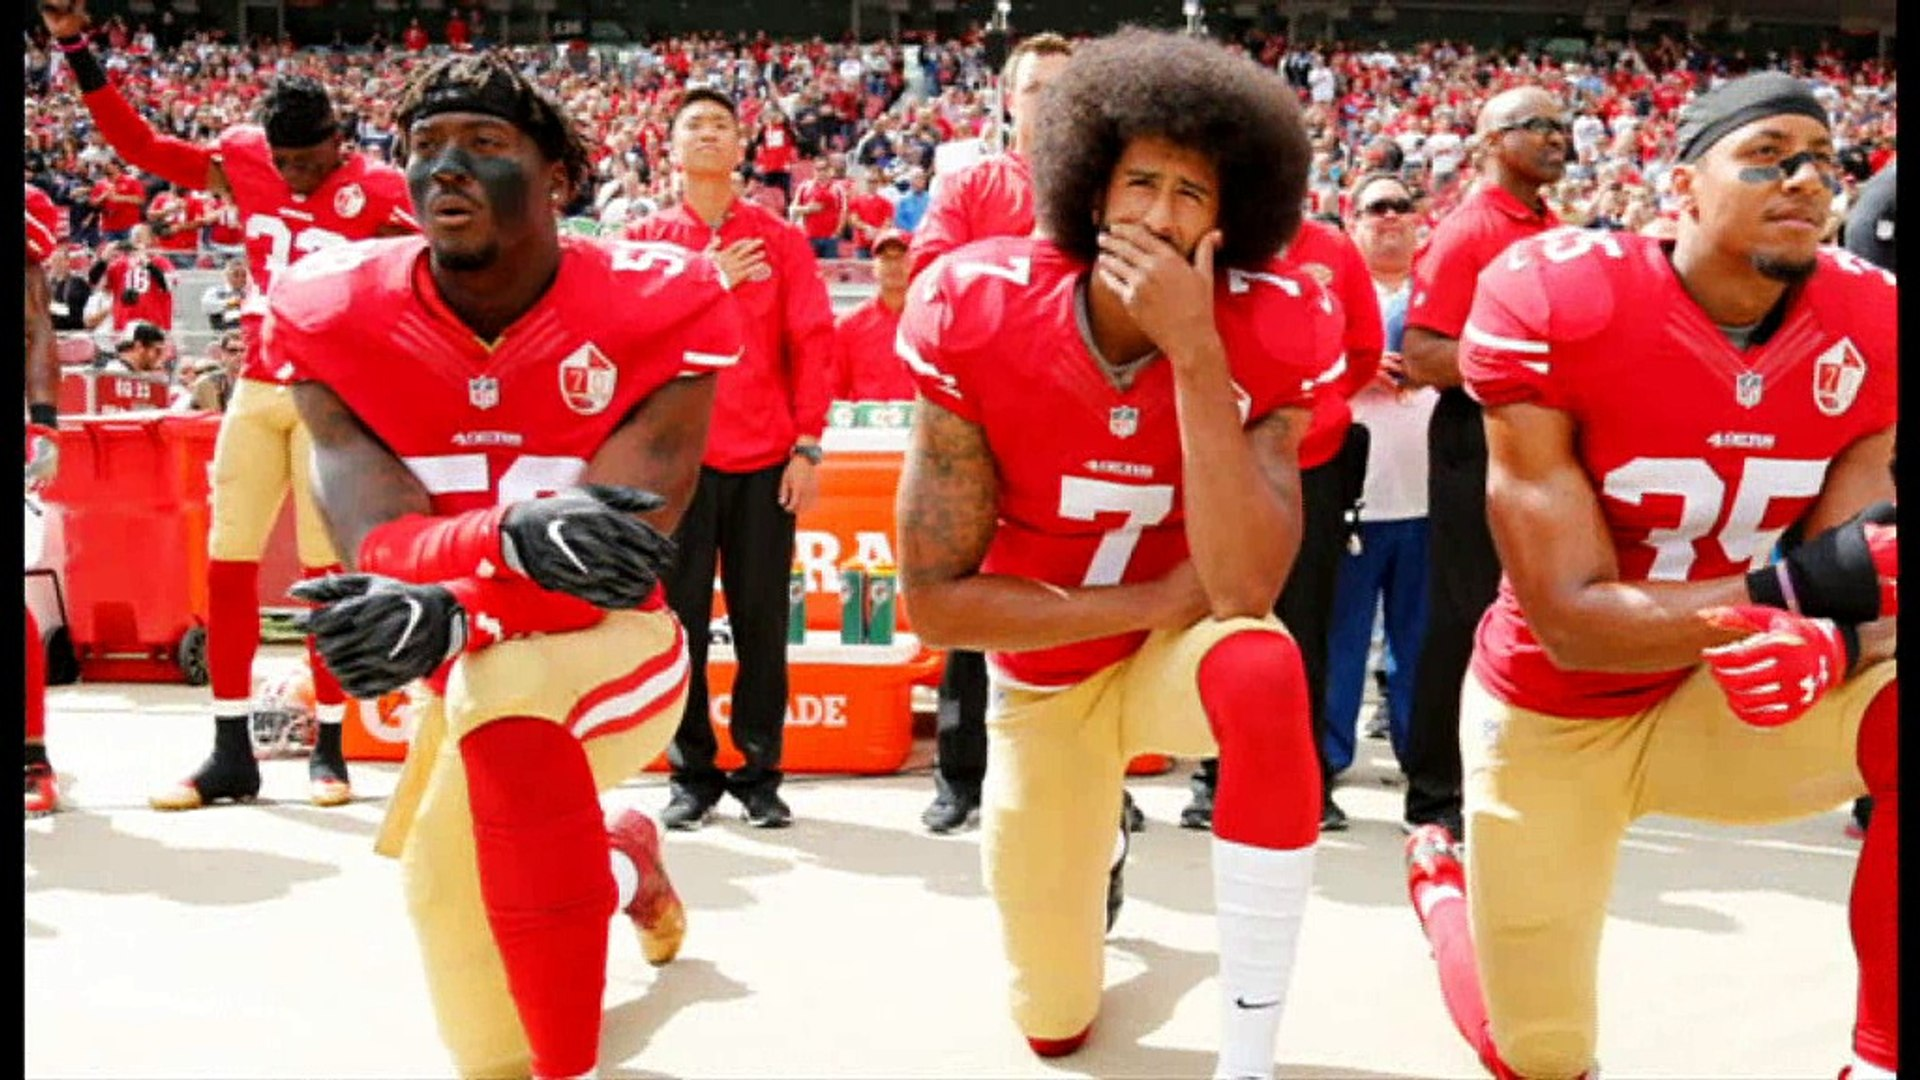 The NFL says it will fine clubs if their players fail to stand for the national anthem